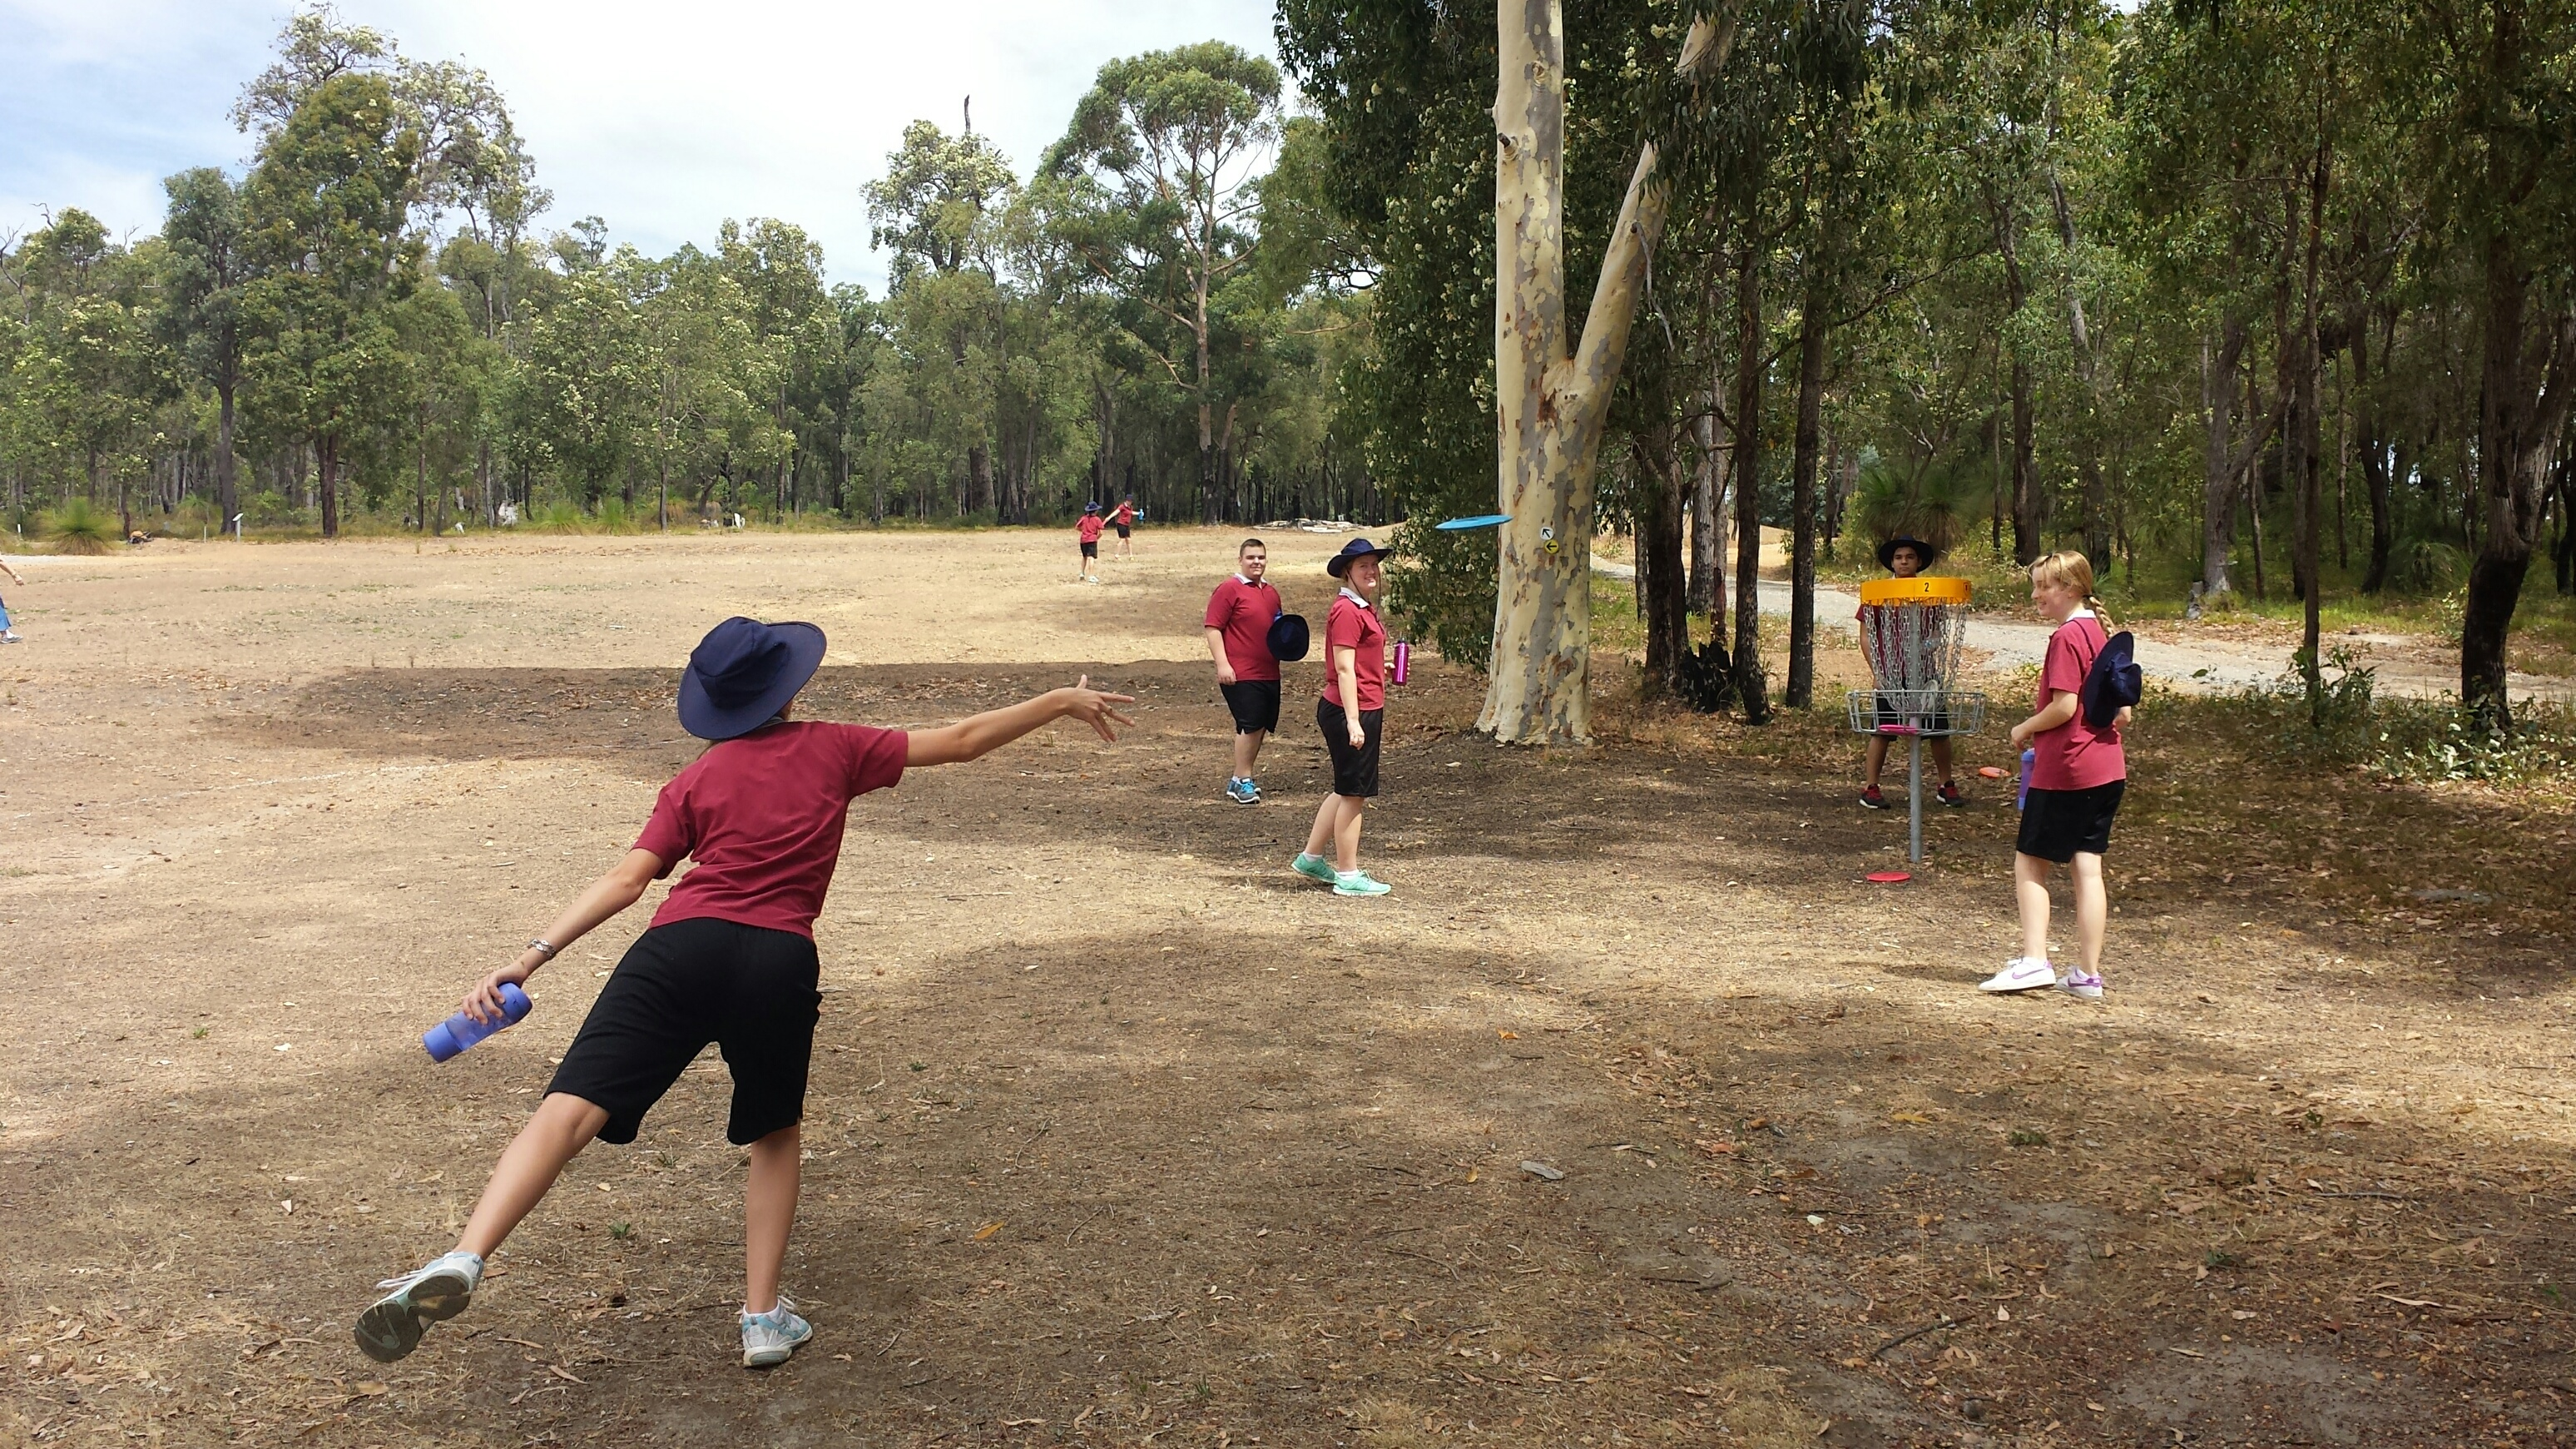 An image of playing disc golf in disc golf park